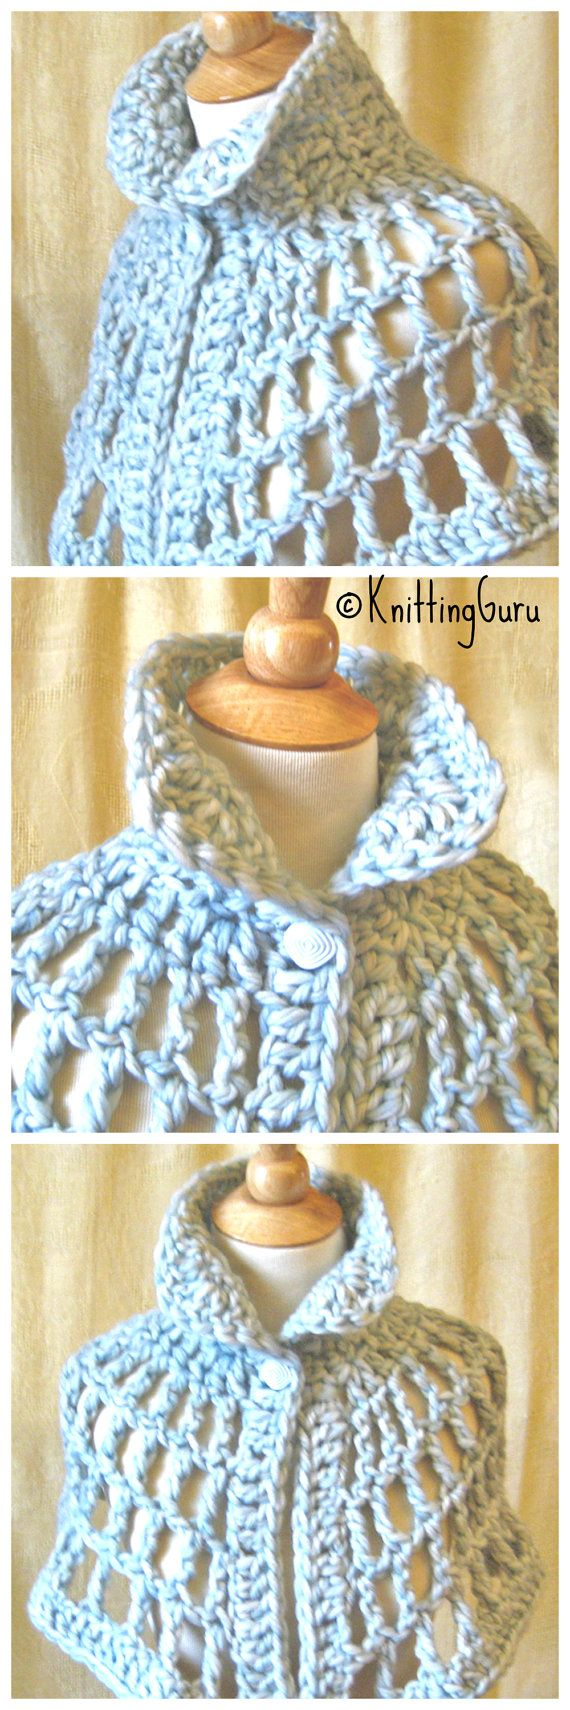 Sky Blue Chunky Crochet Capelet is in this Etsy treasury: https://www.etsy.com/treasury/MTExMjgyOTB8MjcyNTc5ODc3Mg/think-spring-with-freesia-and-placid